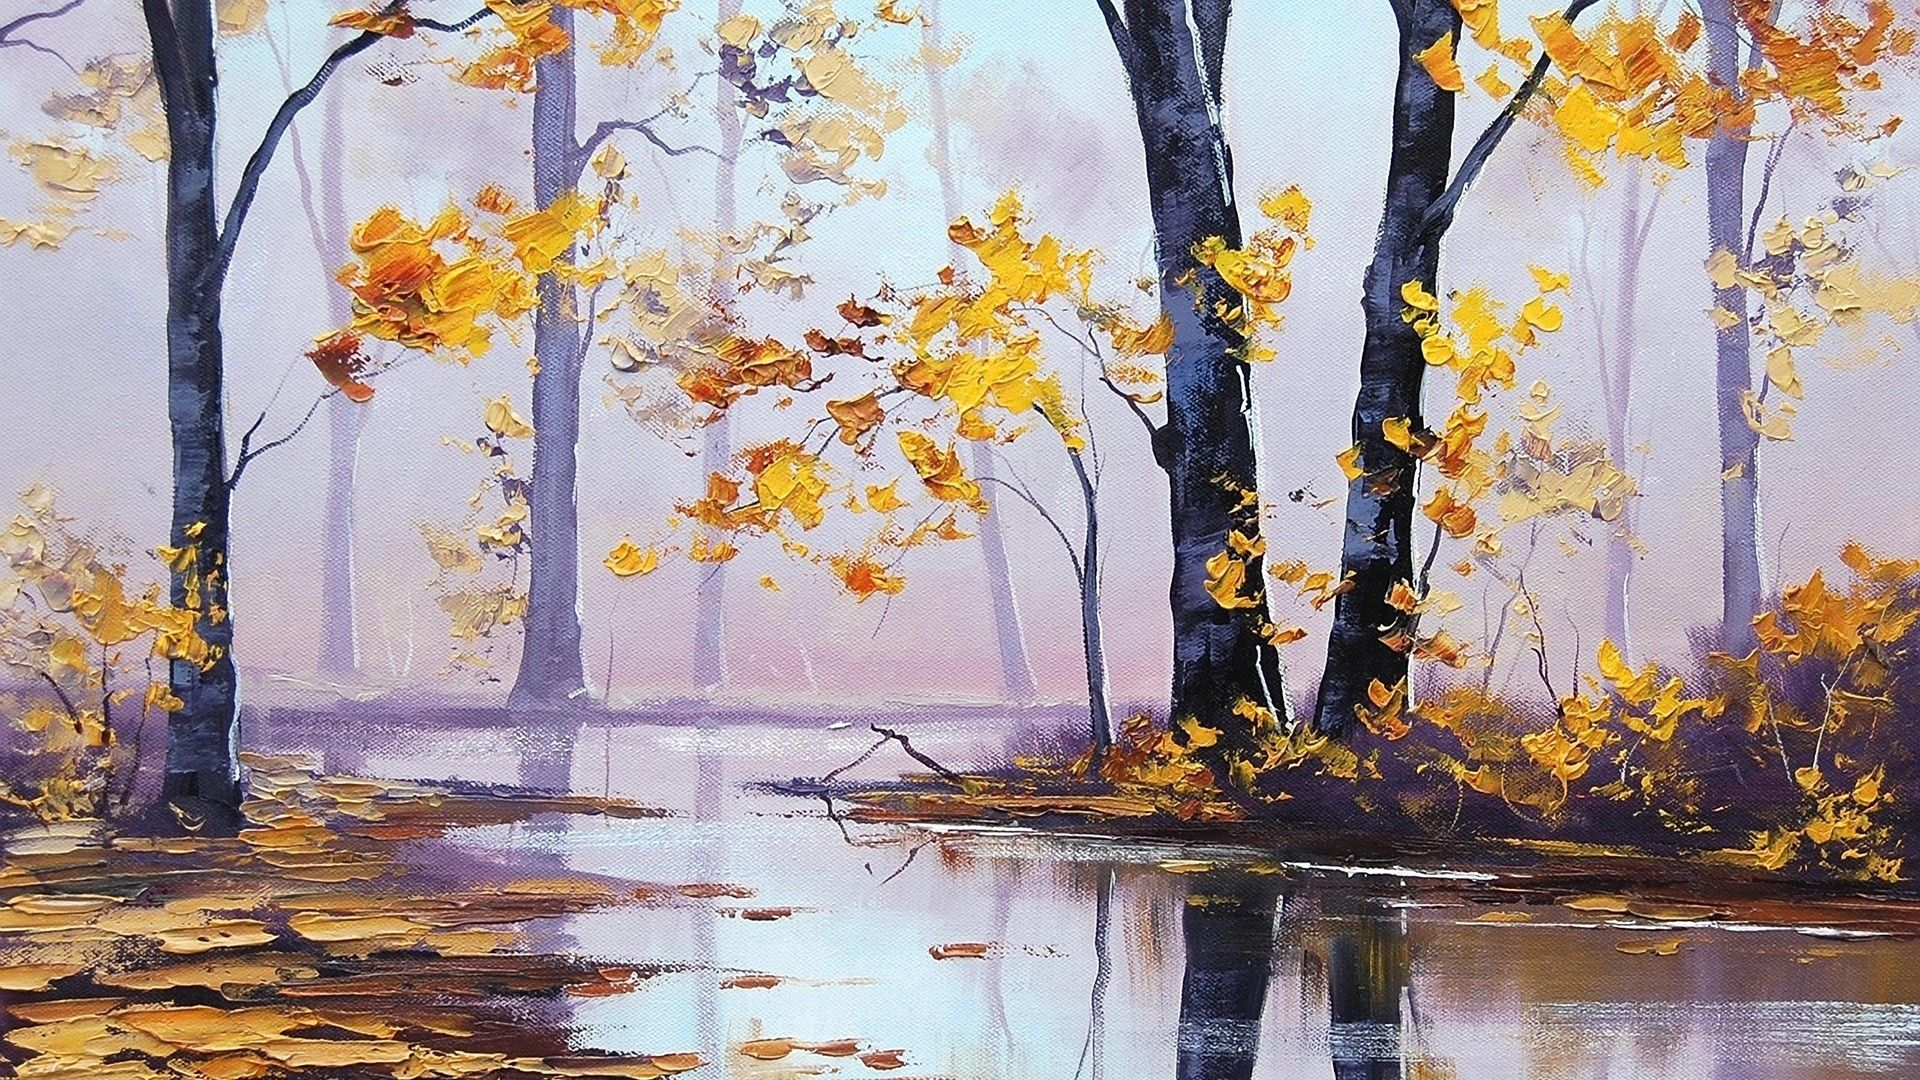 oil paintings 1920x1080 Autumn Scenery Oil Painting